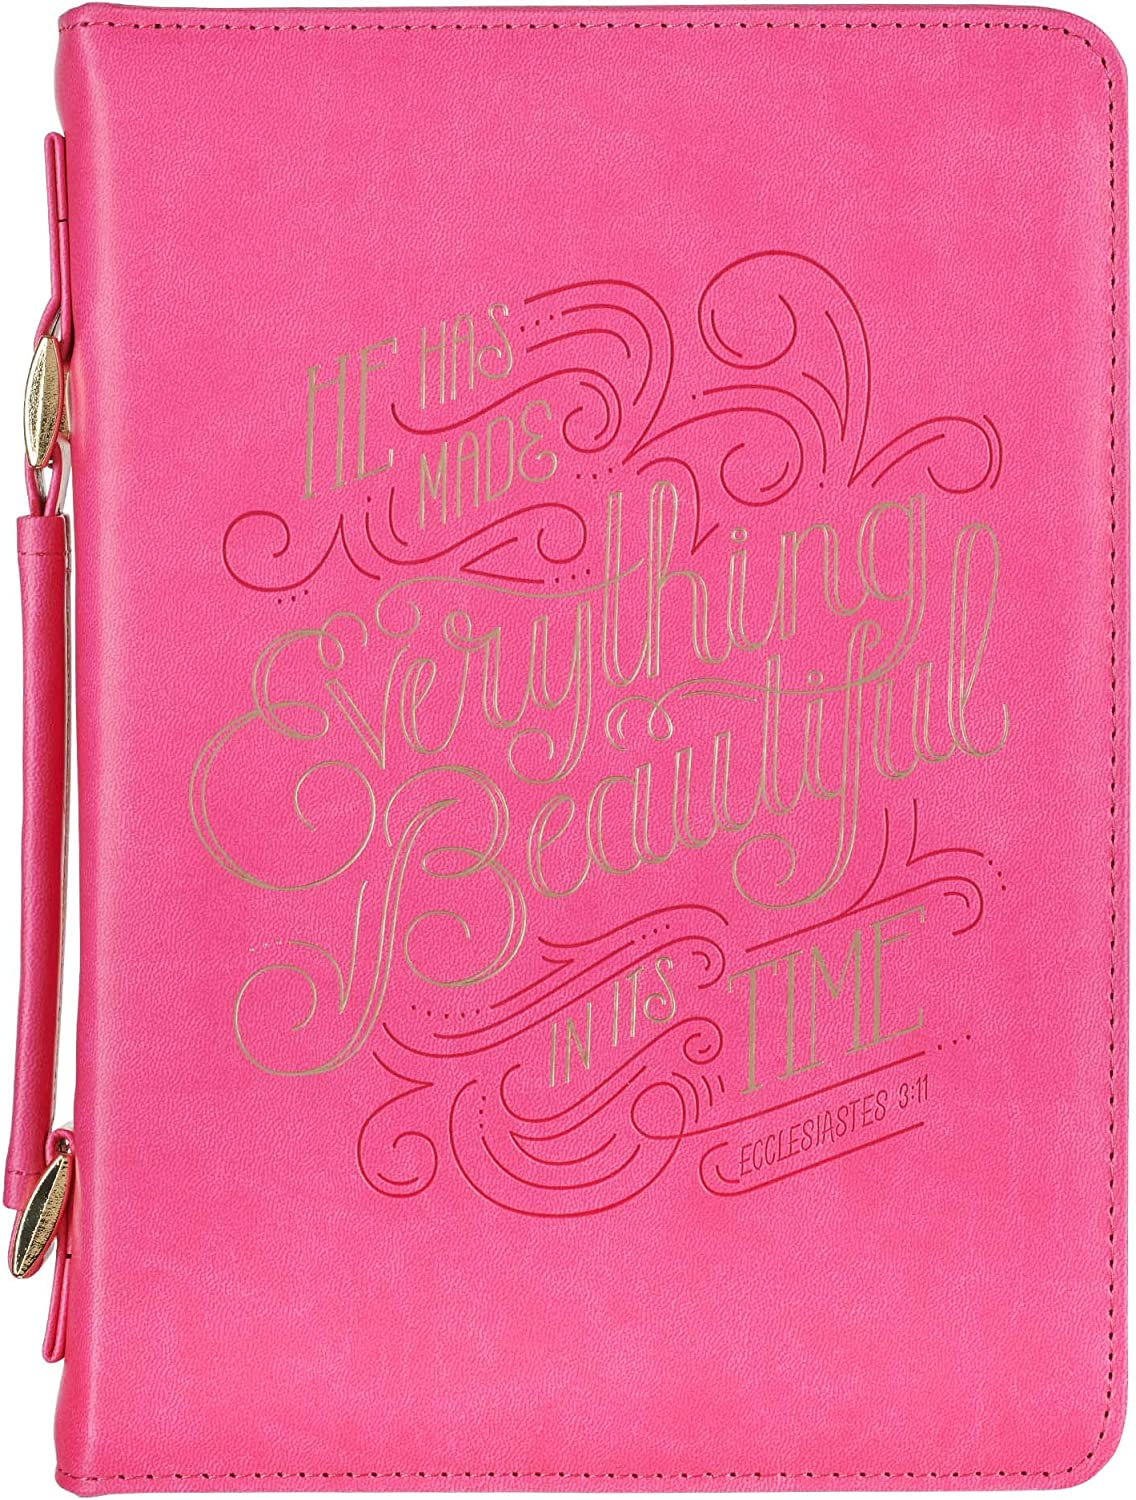 Bible Case//Book Cover Everything Beautiful Ecclesiastes 3:11 Medium Pink Fashion Bible Cover for Women Faux Leather